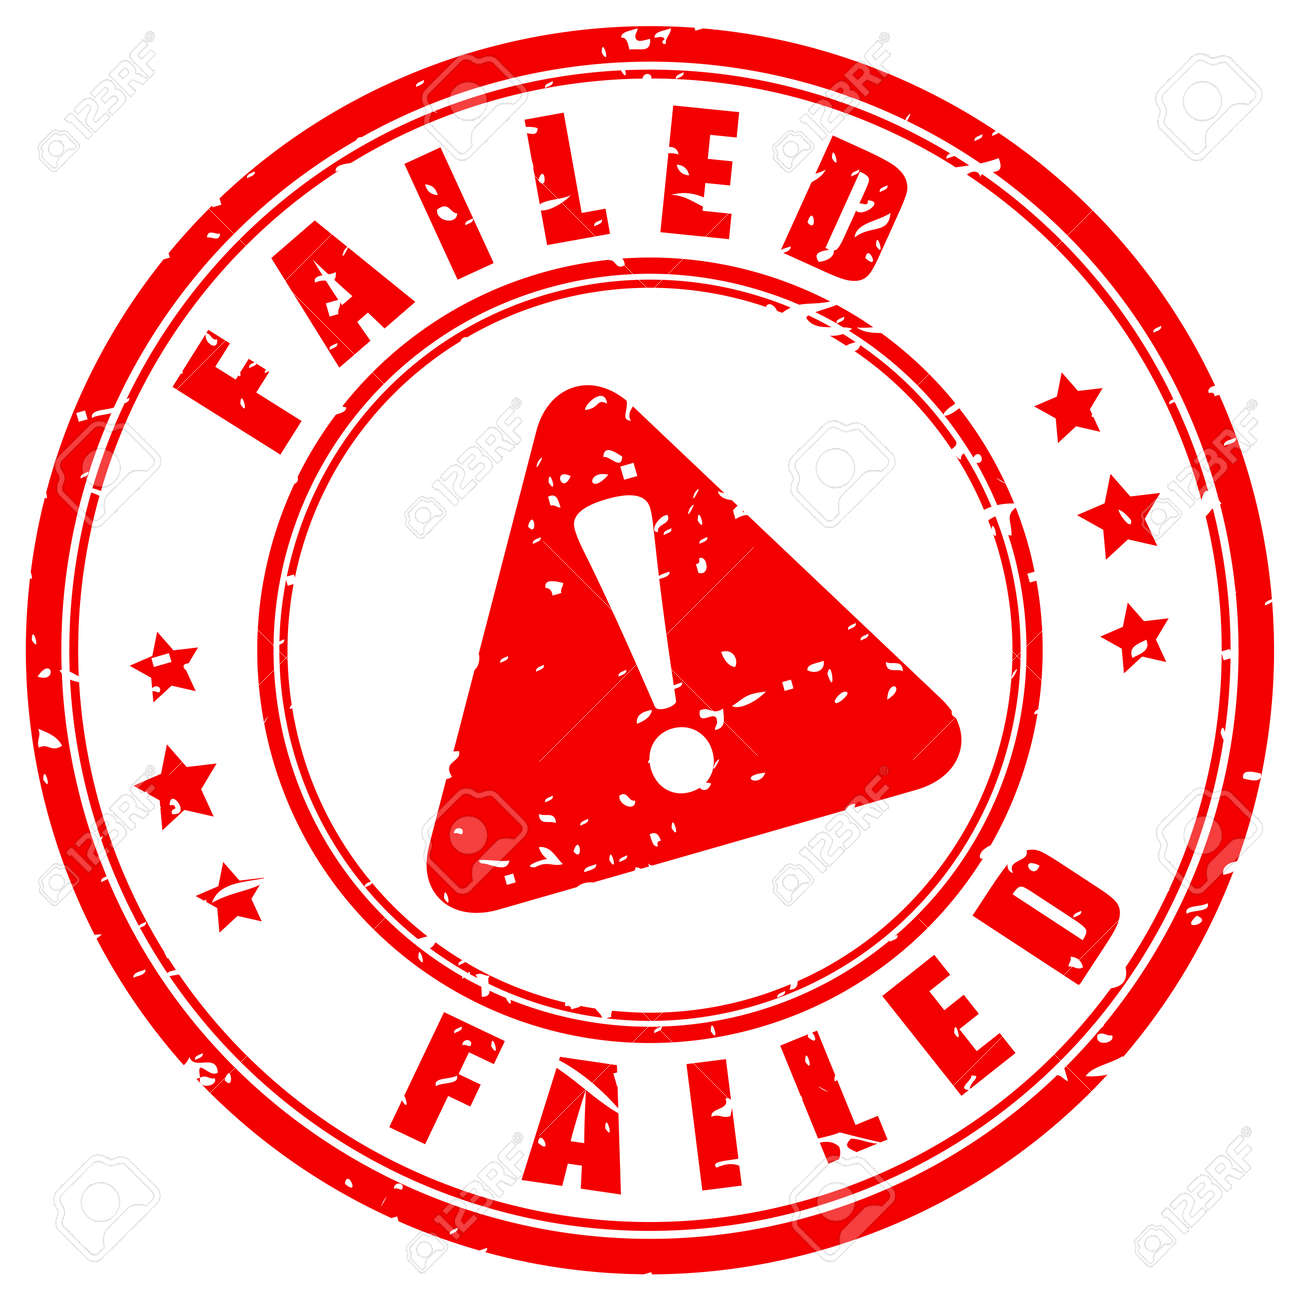 Failed grunge vector stamp isolated on white background - 155220969